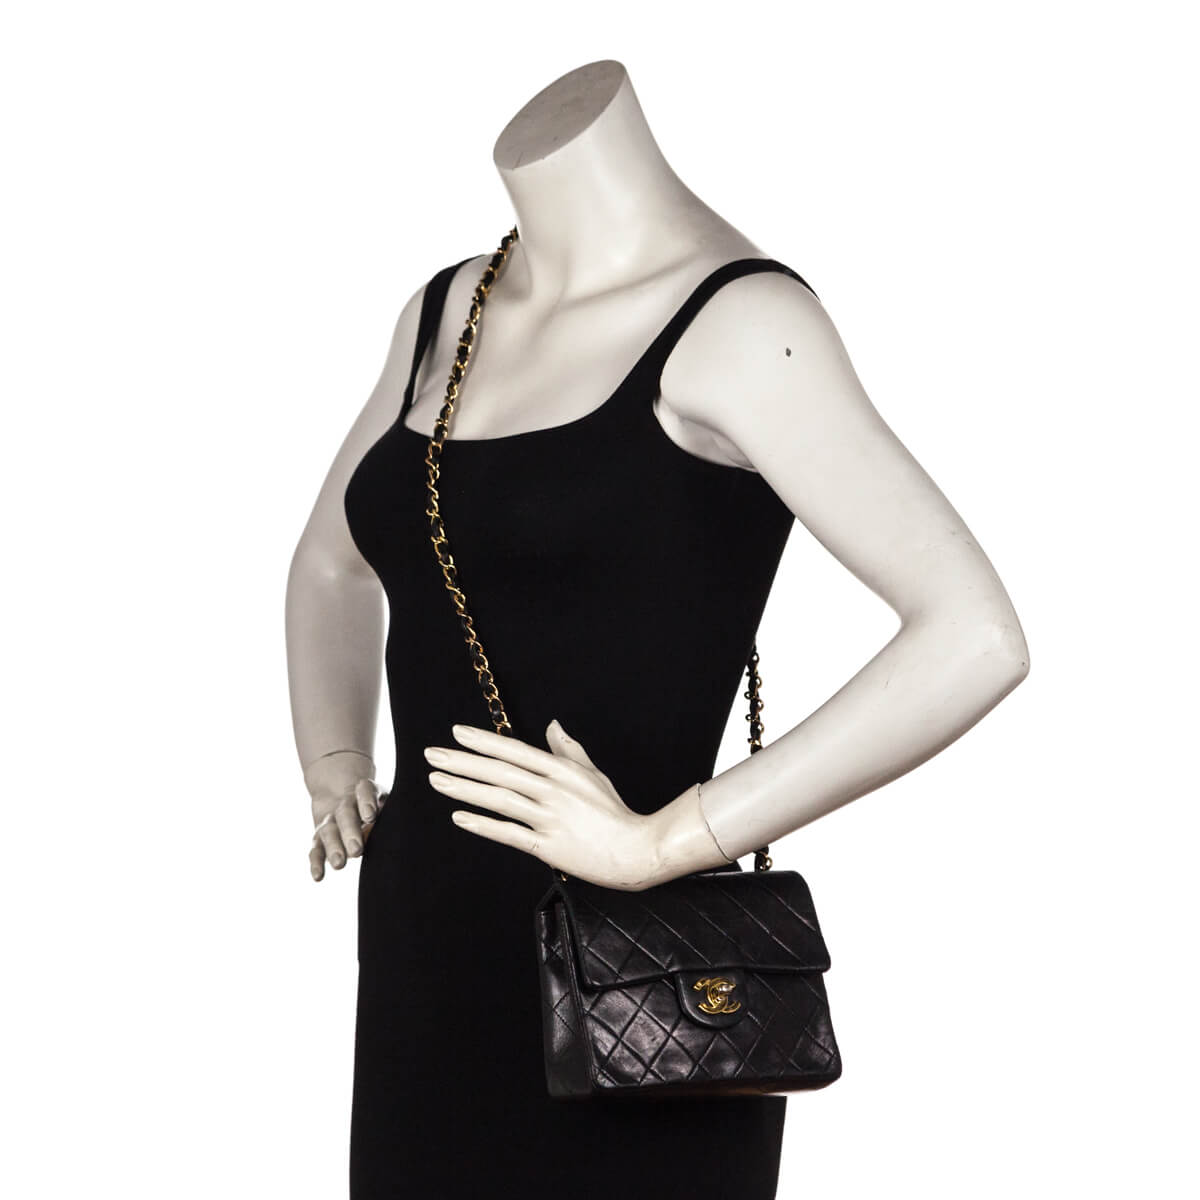 b4f7fdcdee31 ... Chanel Black Lambskin Vintage Mini Square Flap bag - LOVE that BAG -  Preowned Authentic Designer